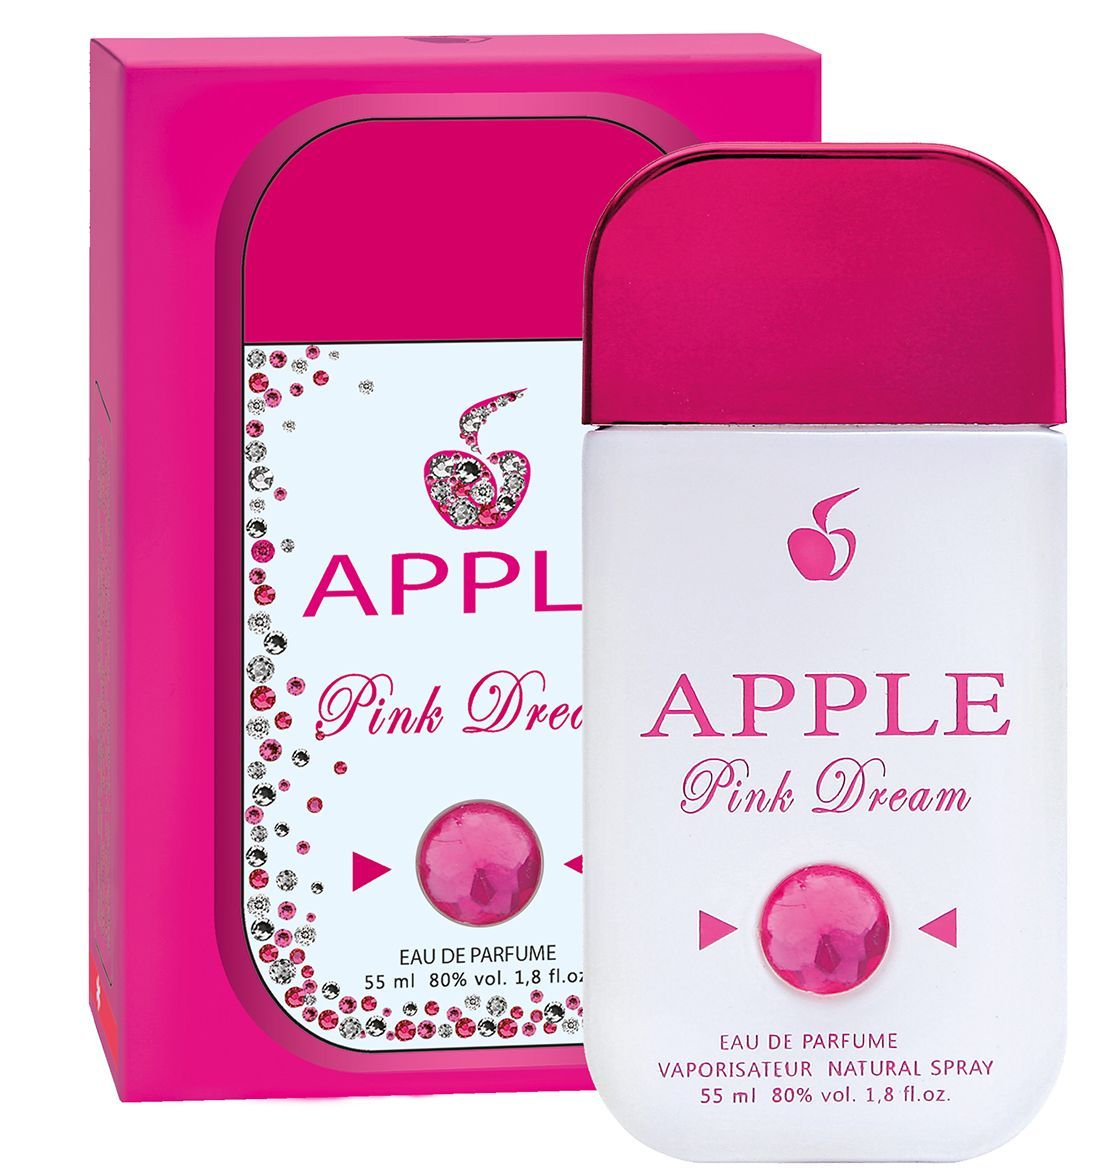 Apple Pink Dream